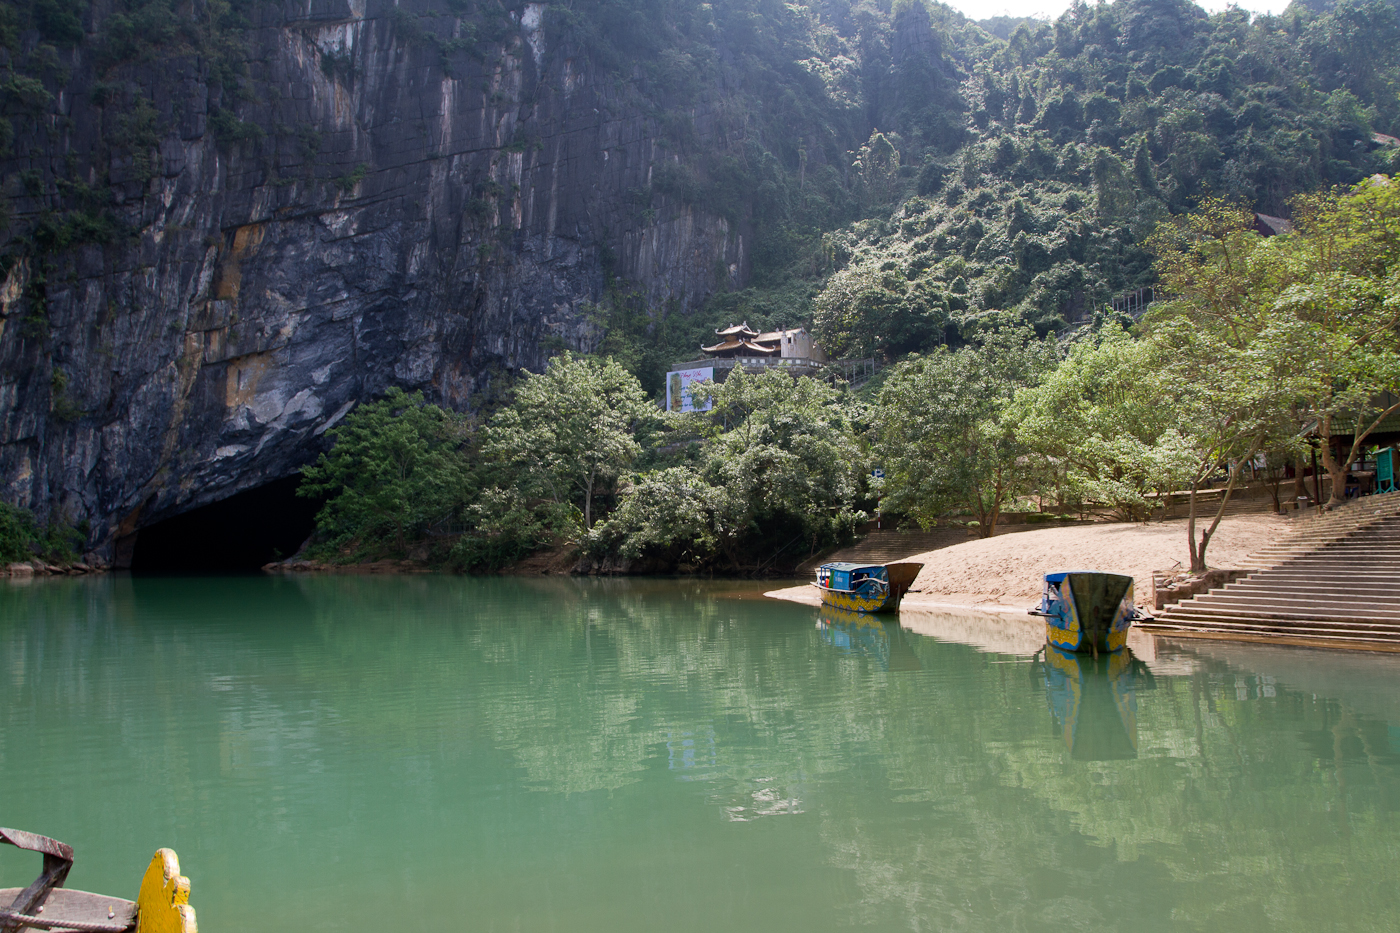 On the way to Phong Nha cave via the underground river.